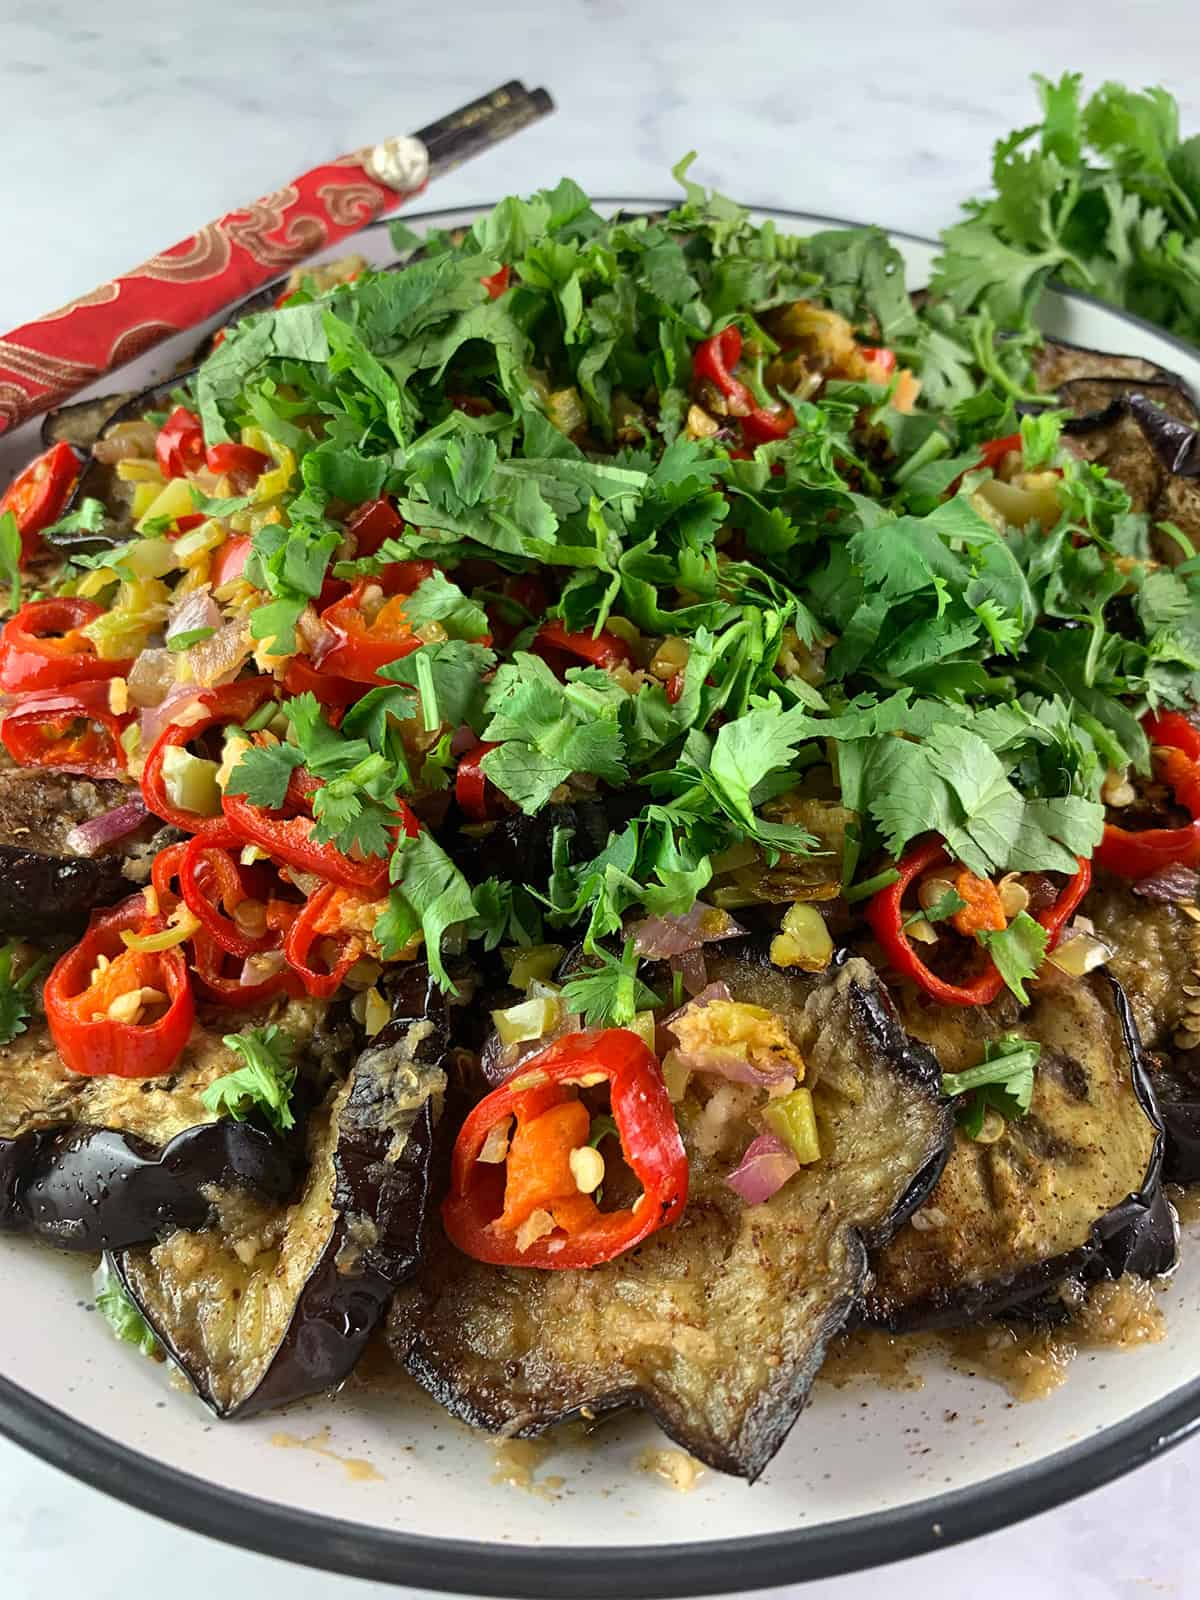 CLOSE UP OF CHINESE EGGPLANT SALAD PORTRAIT